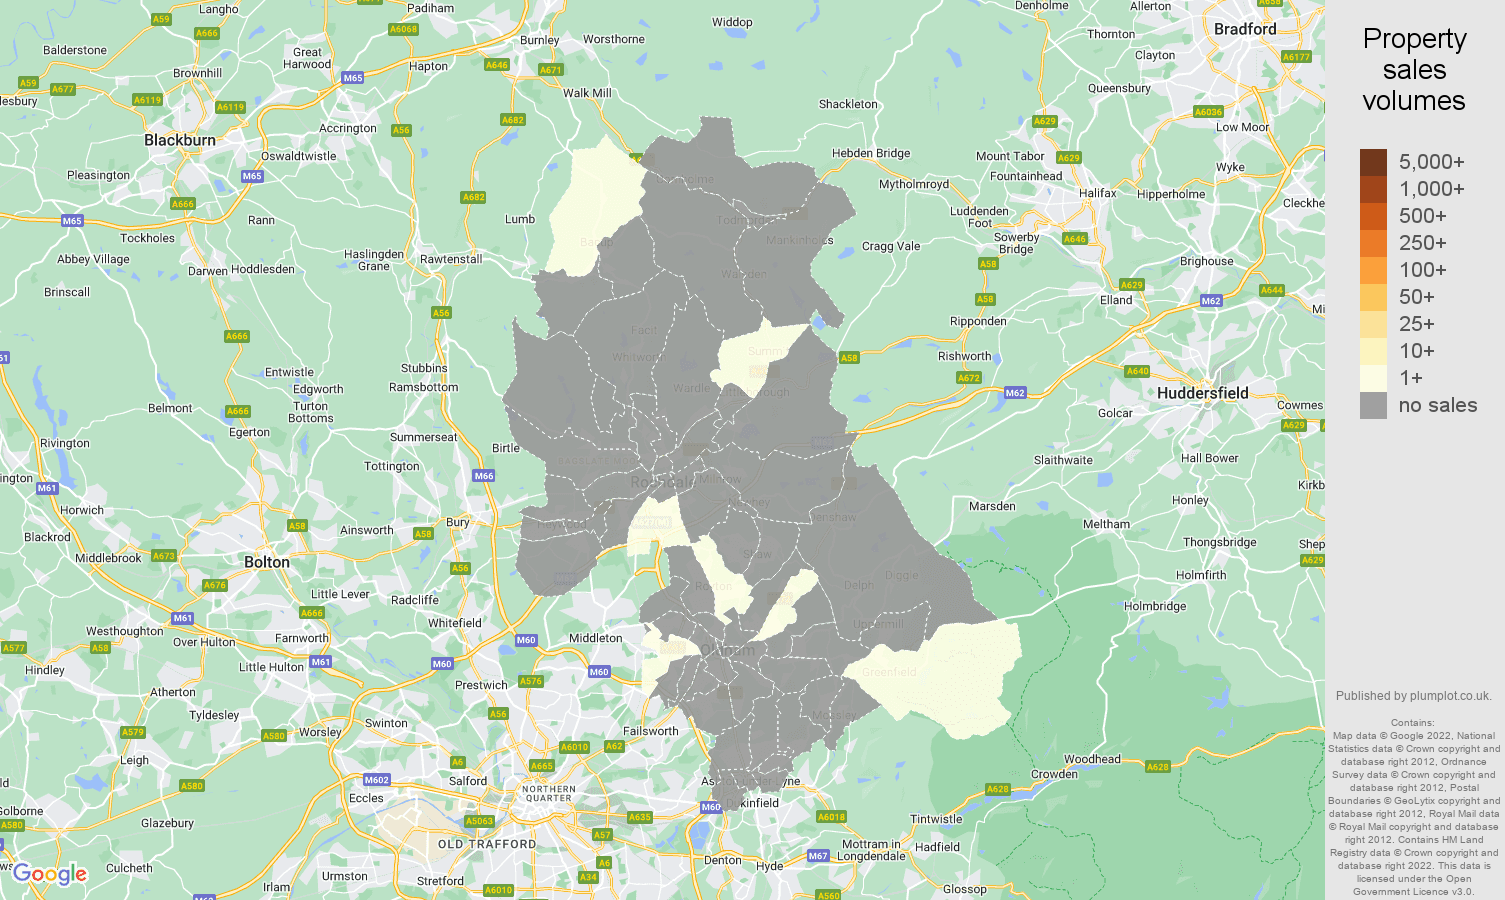 Oldham map of sales of new properties